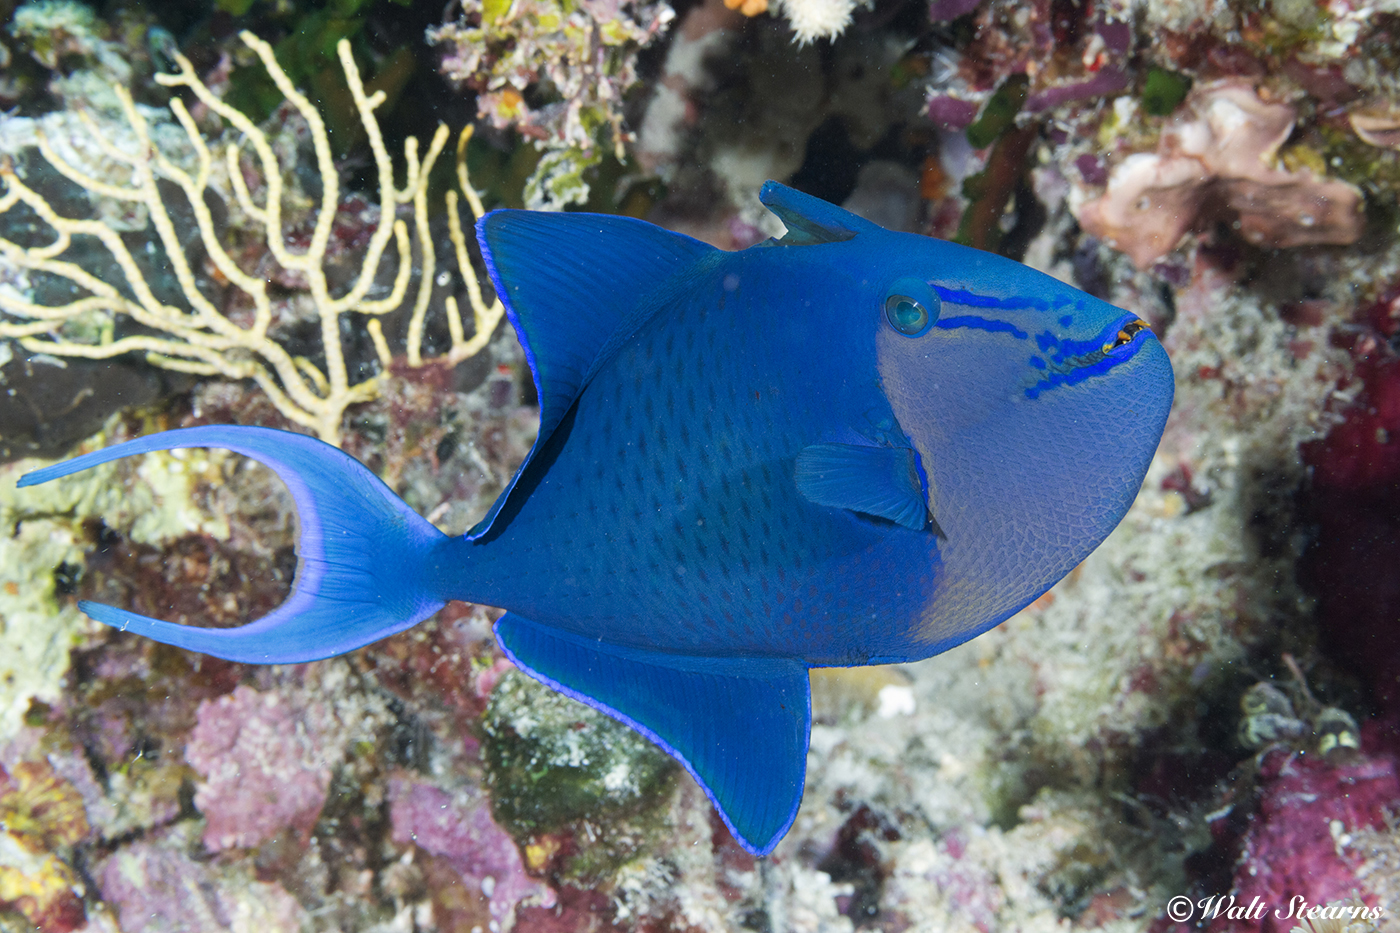 The redtooth triggerfish's fang-like front teeth give it an almost demonic appearance. In reality, it is one of the more docile members of the triggerfish family. These fish are often found in groups, feeding on plankton in the open water, or nibbling on